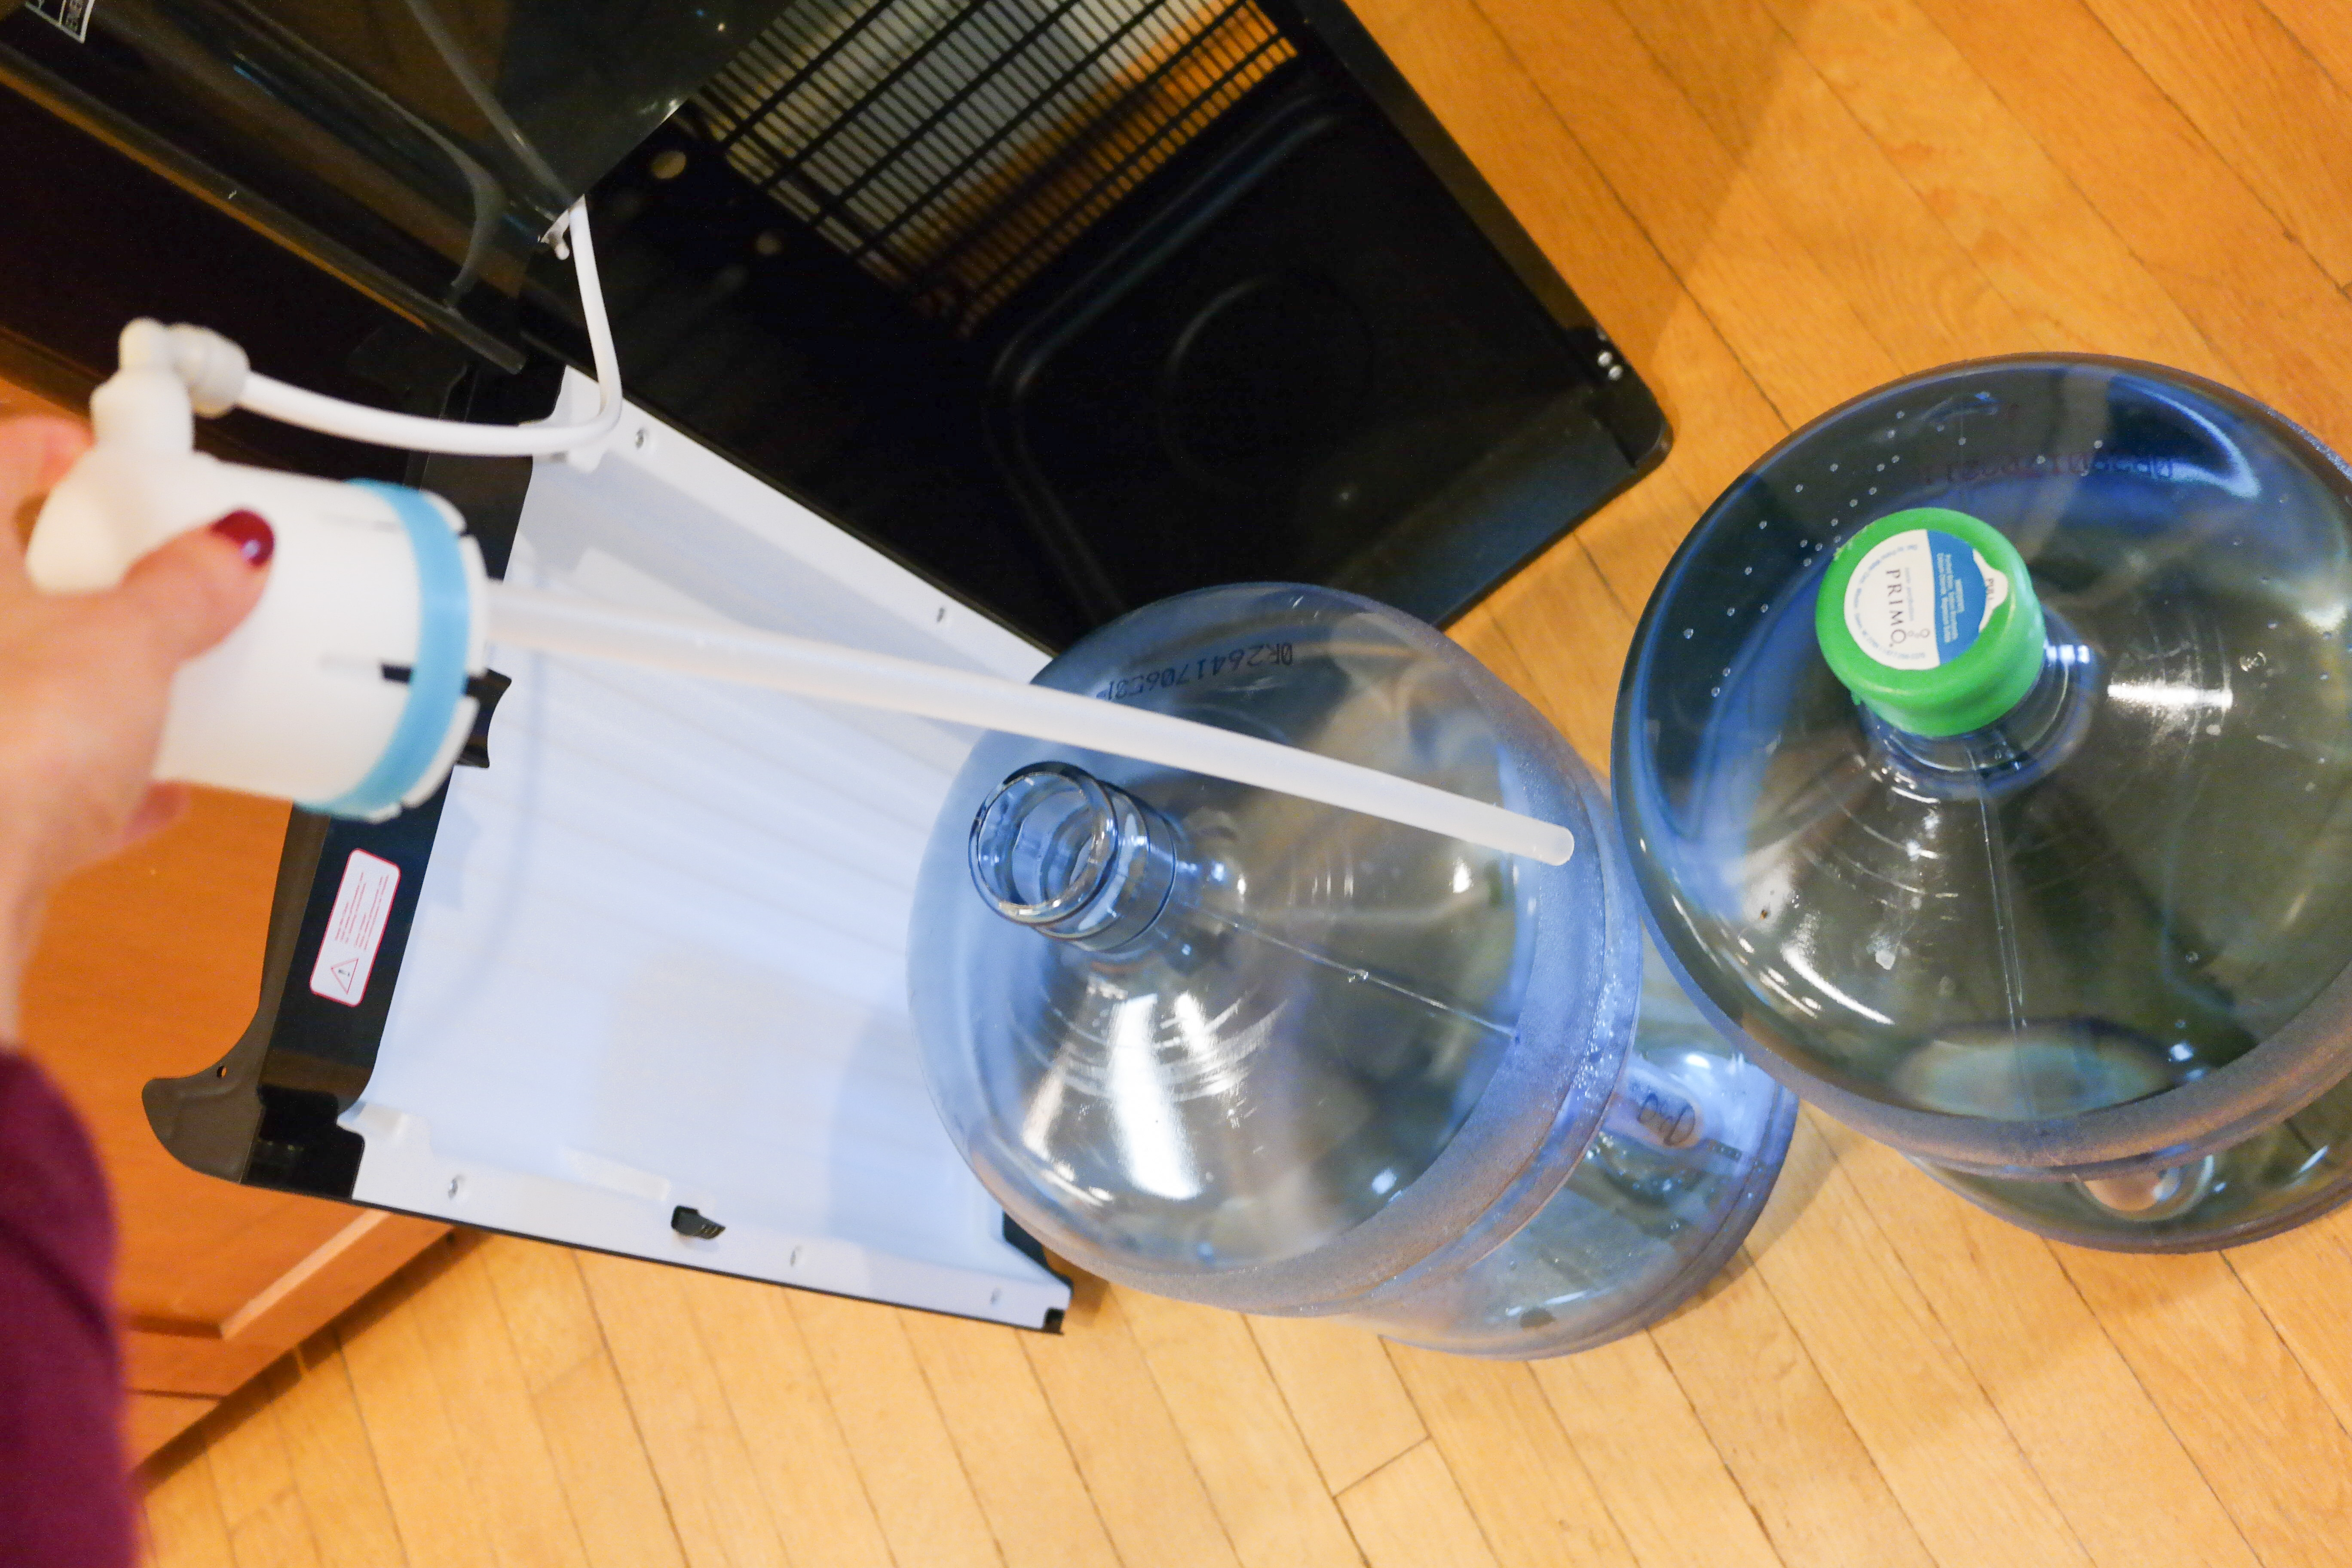 there are a few other reasons i like having the water dispenser including ease customer service water quality with primo water